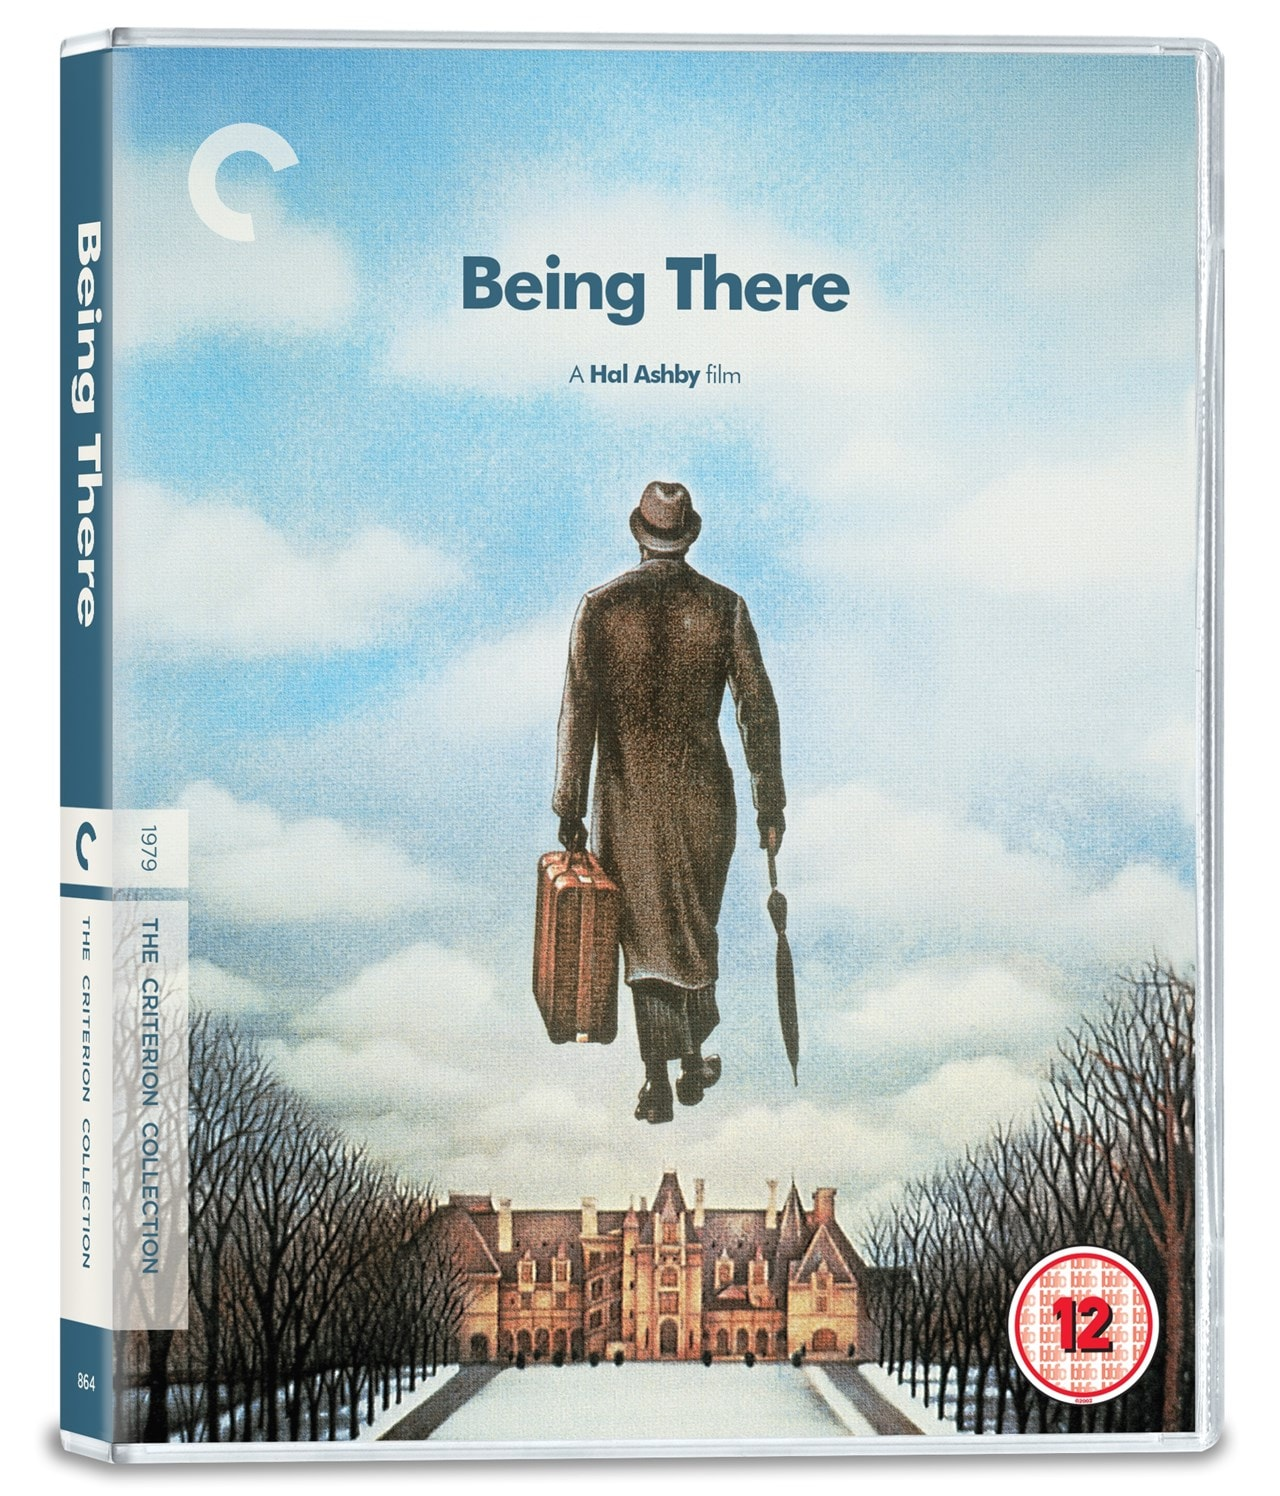 Being There - The Criterion Collection - 2